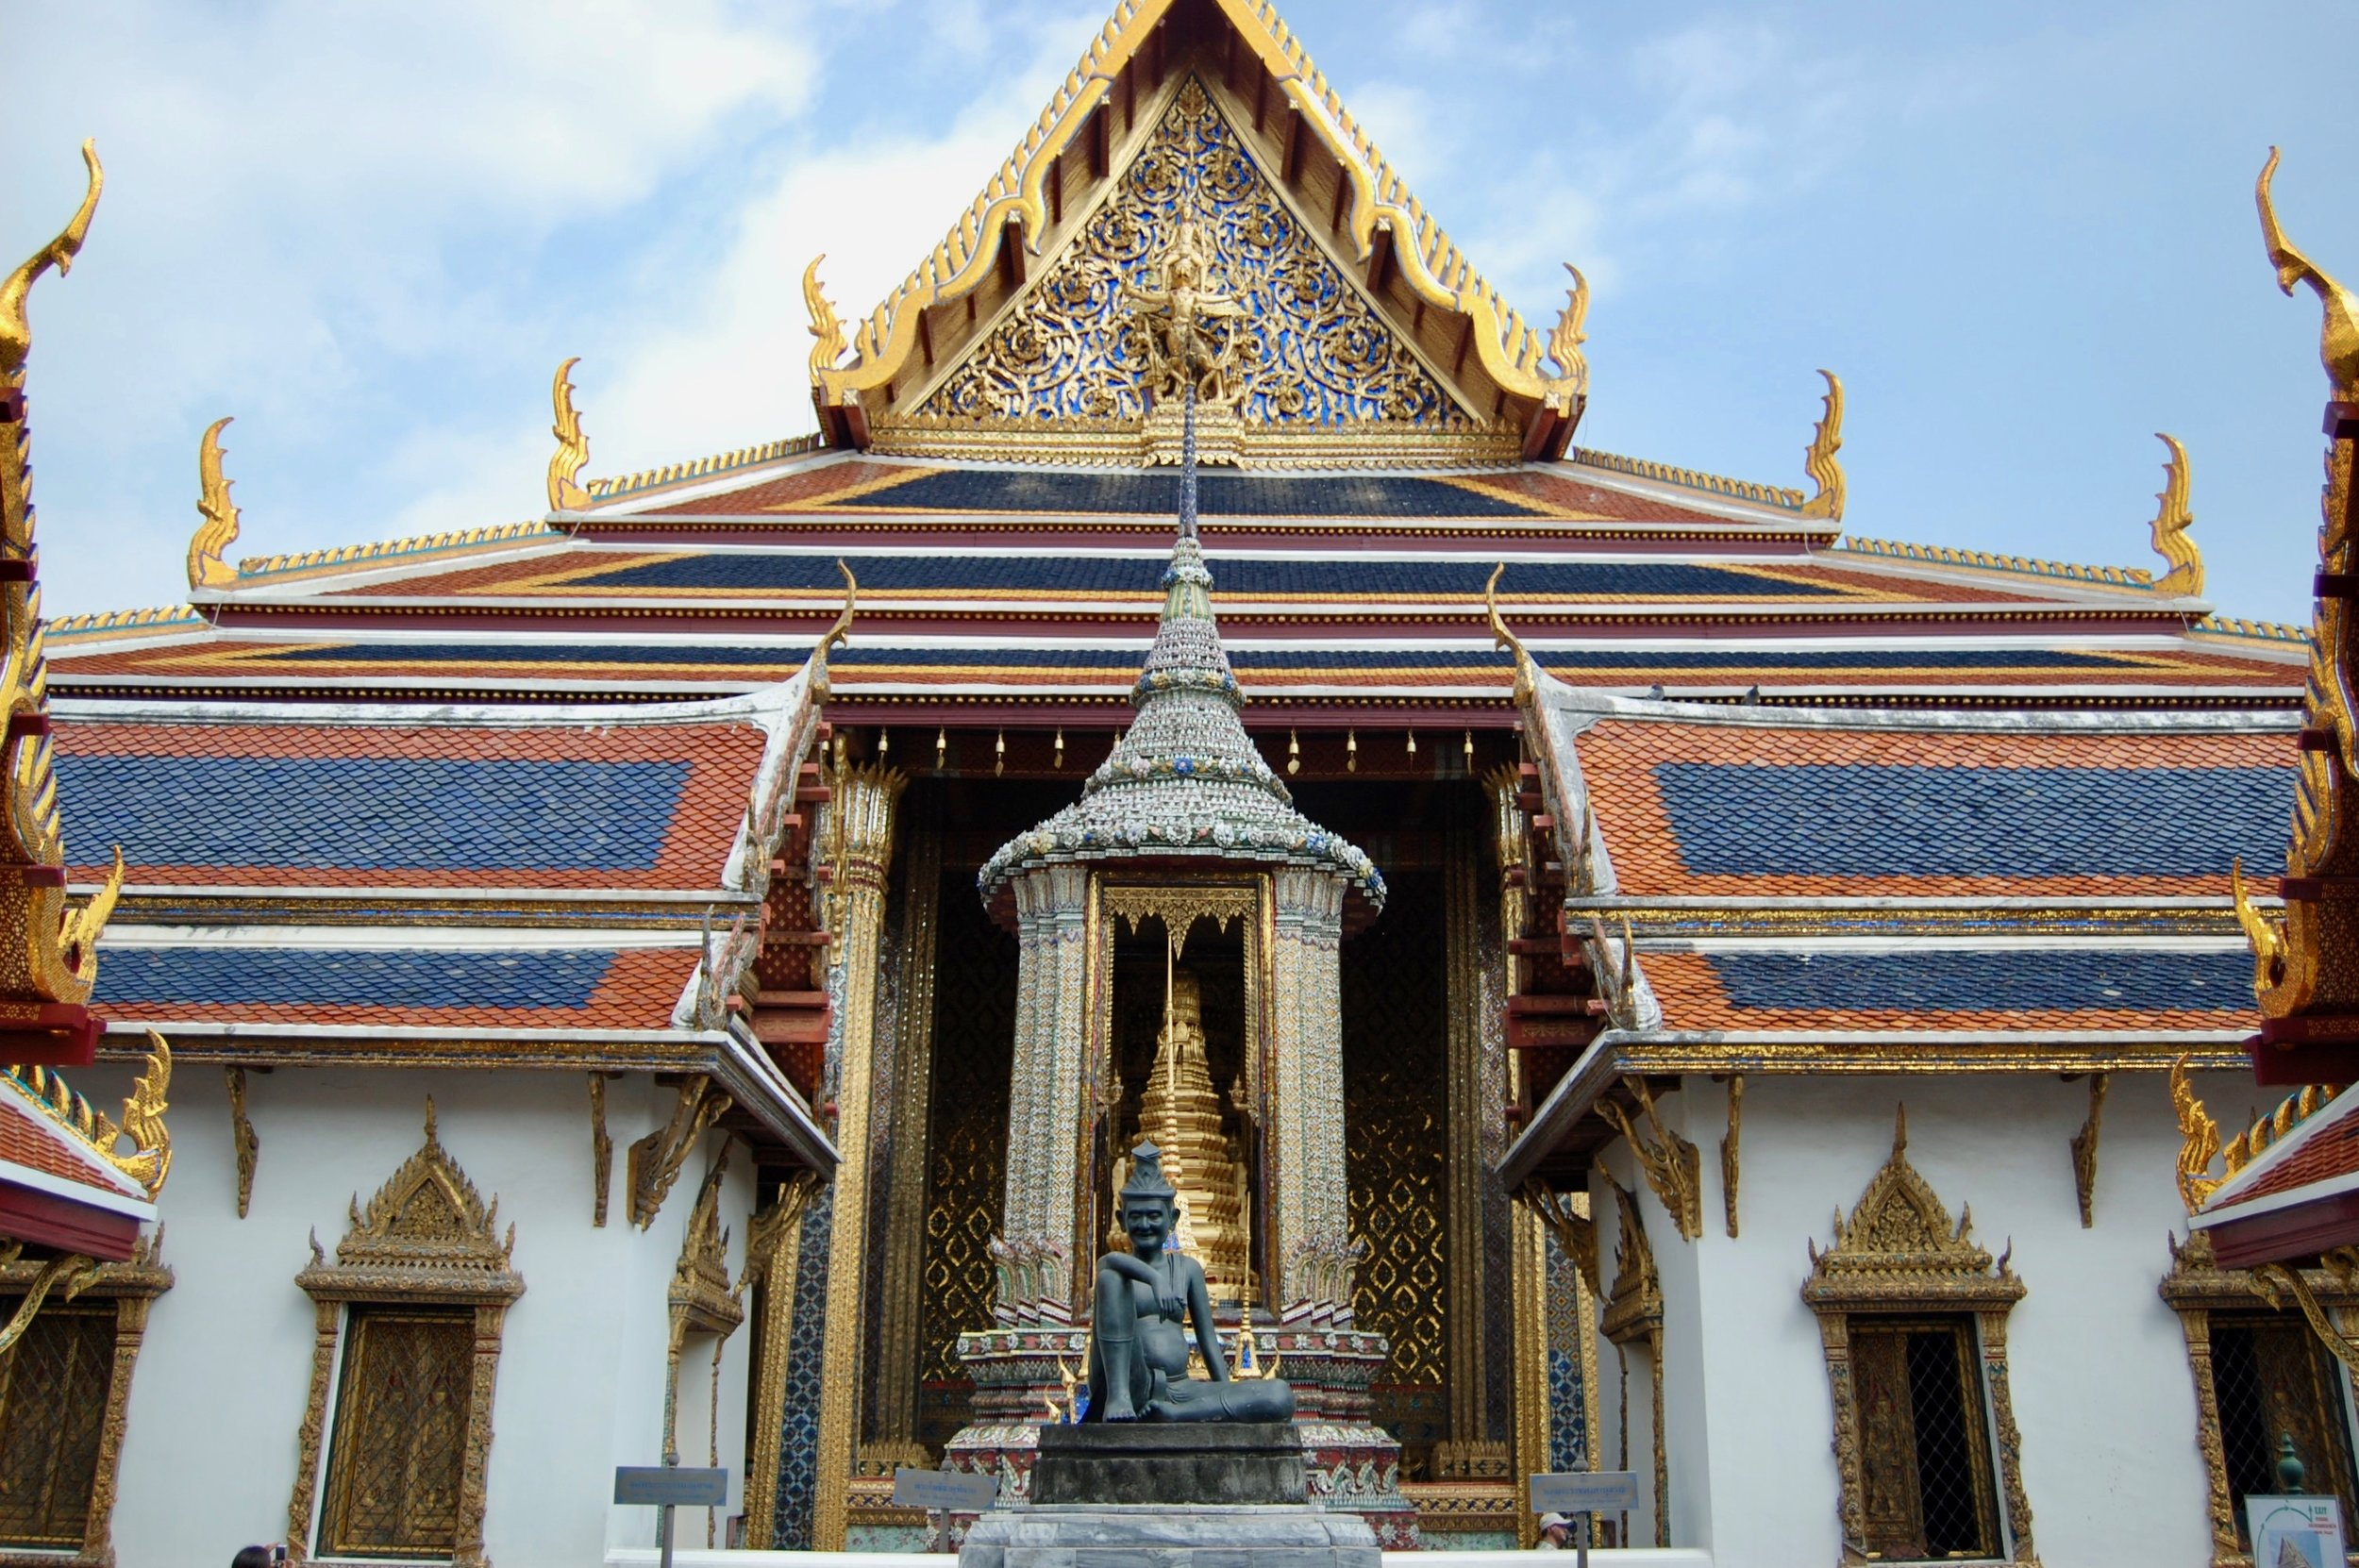 Thai Royal Palace (Bangkok, Thailand)